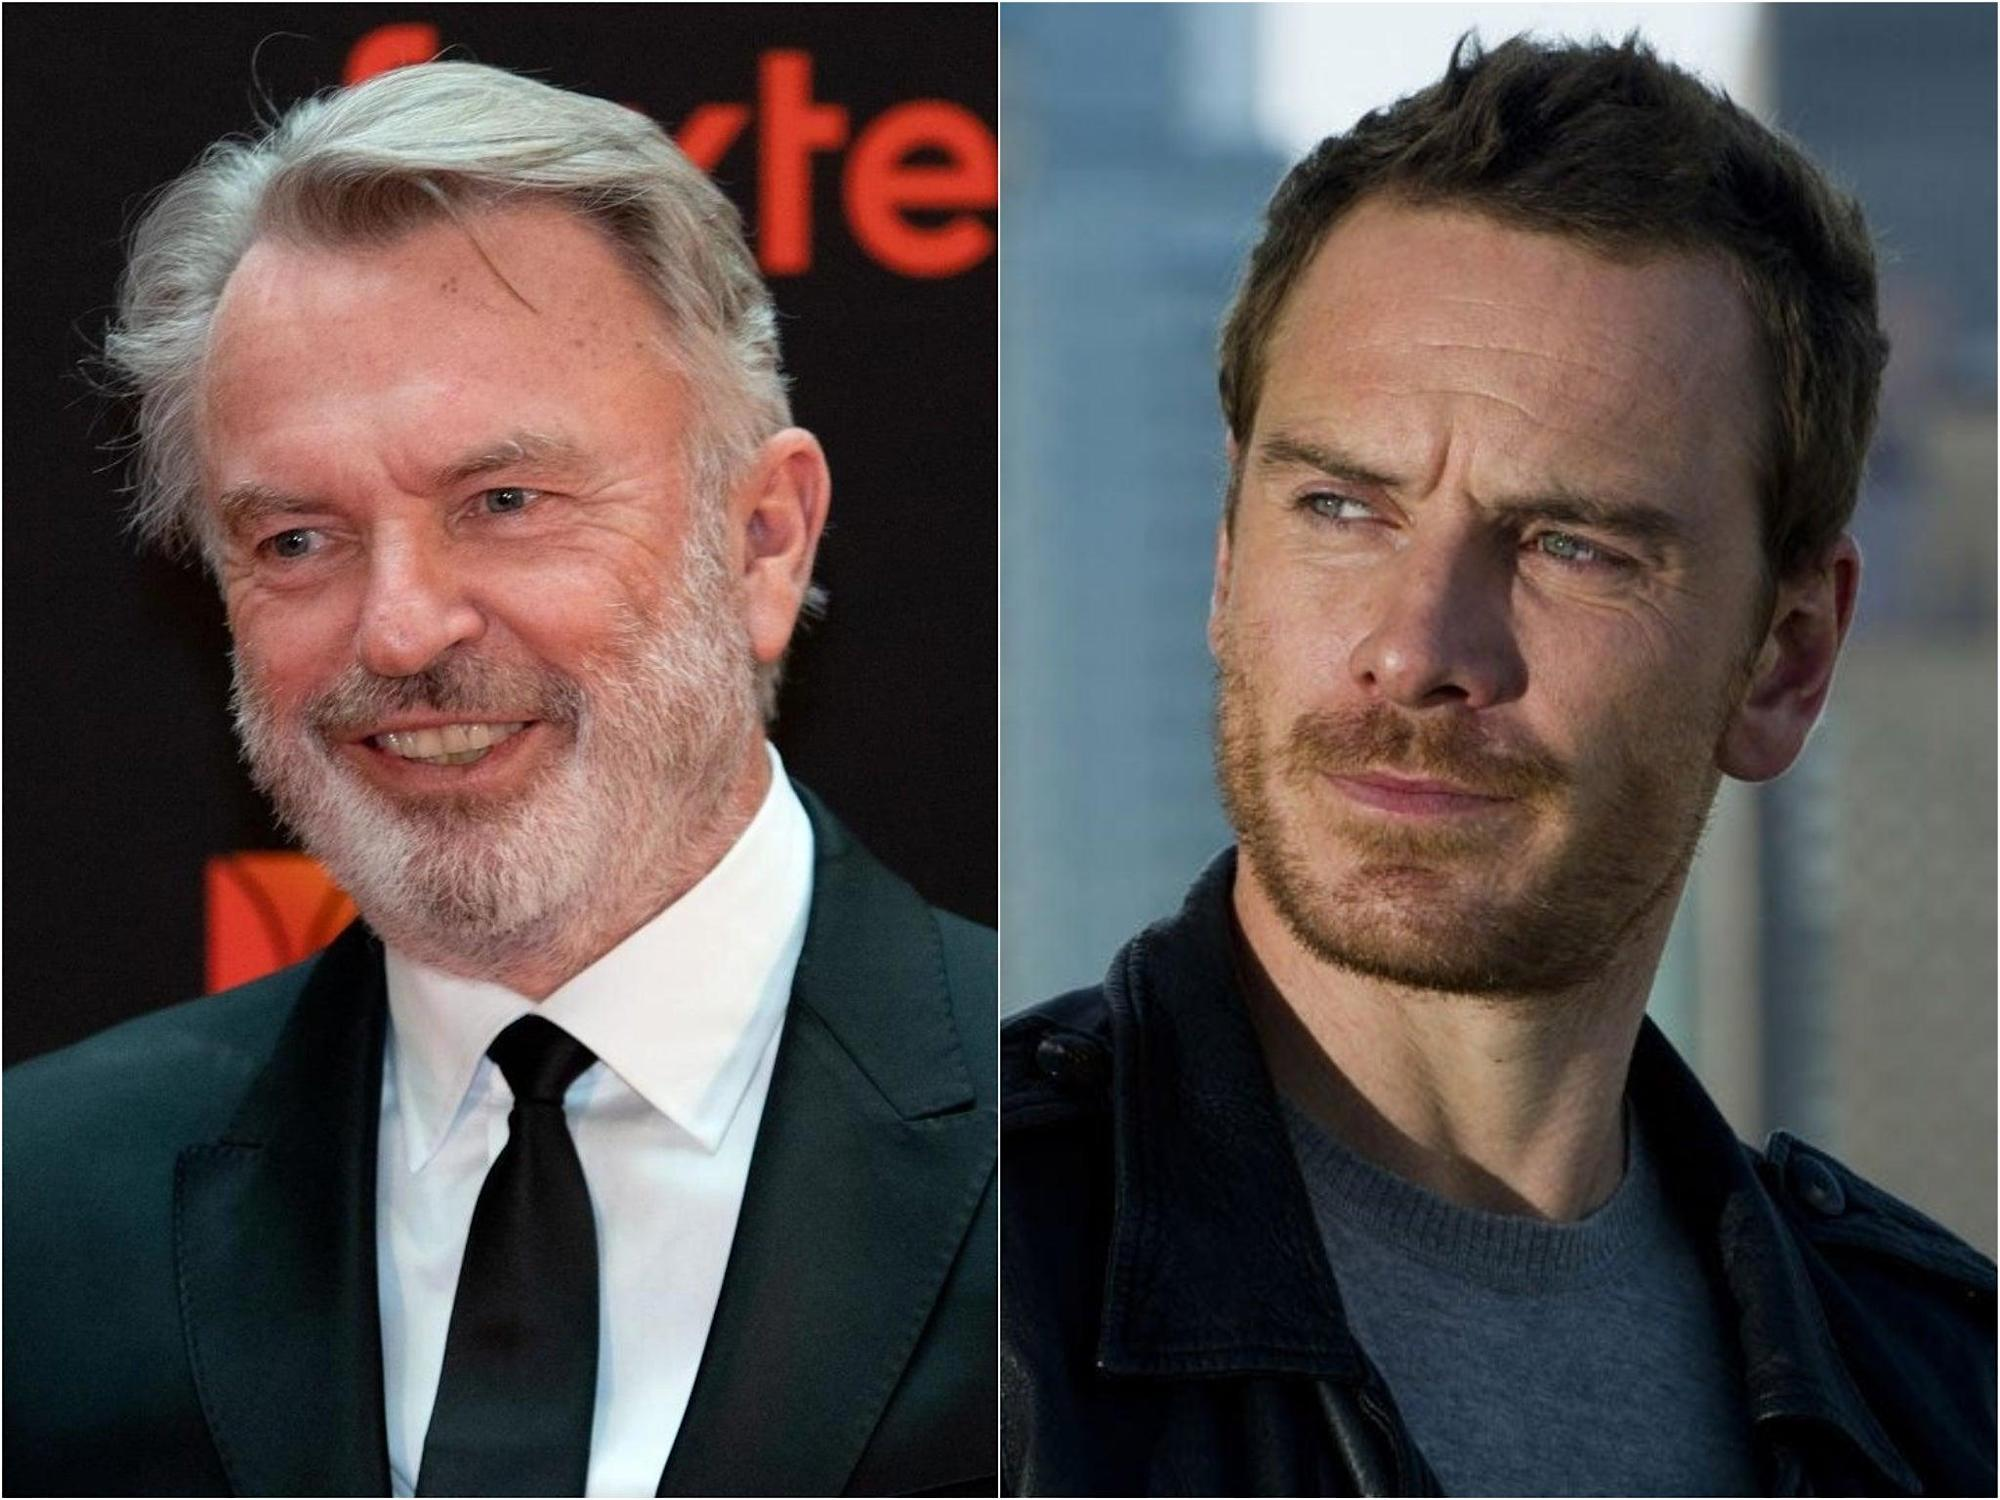 Sam Neill says Michael Fassbender 'took offence' at having a rooster named after him: 'Not everyone is happy to be named after a…'